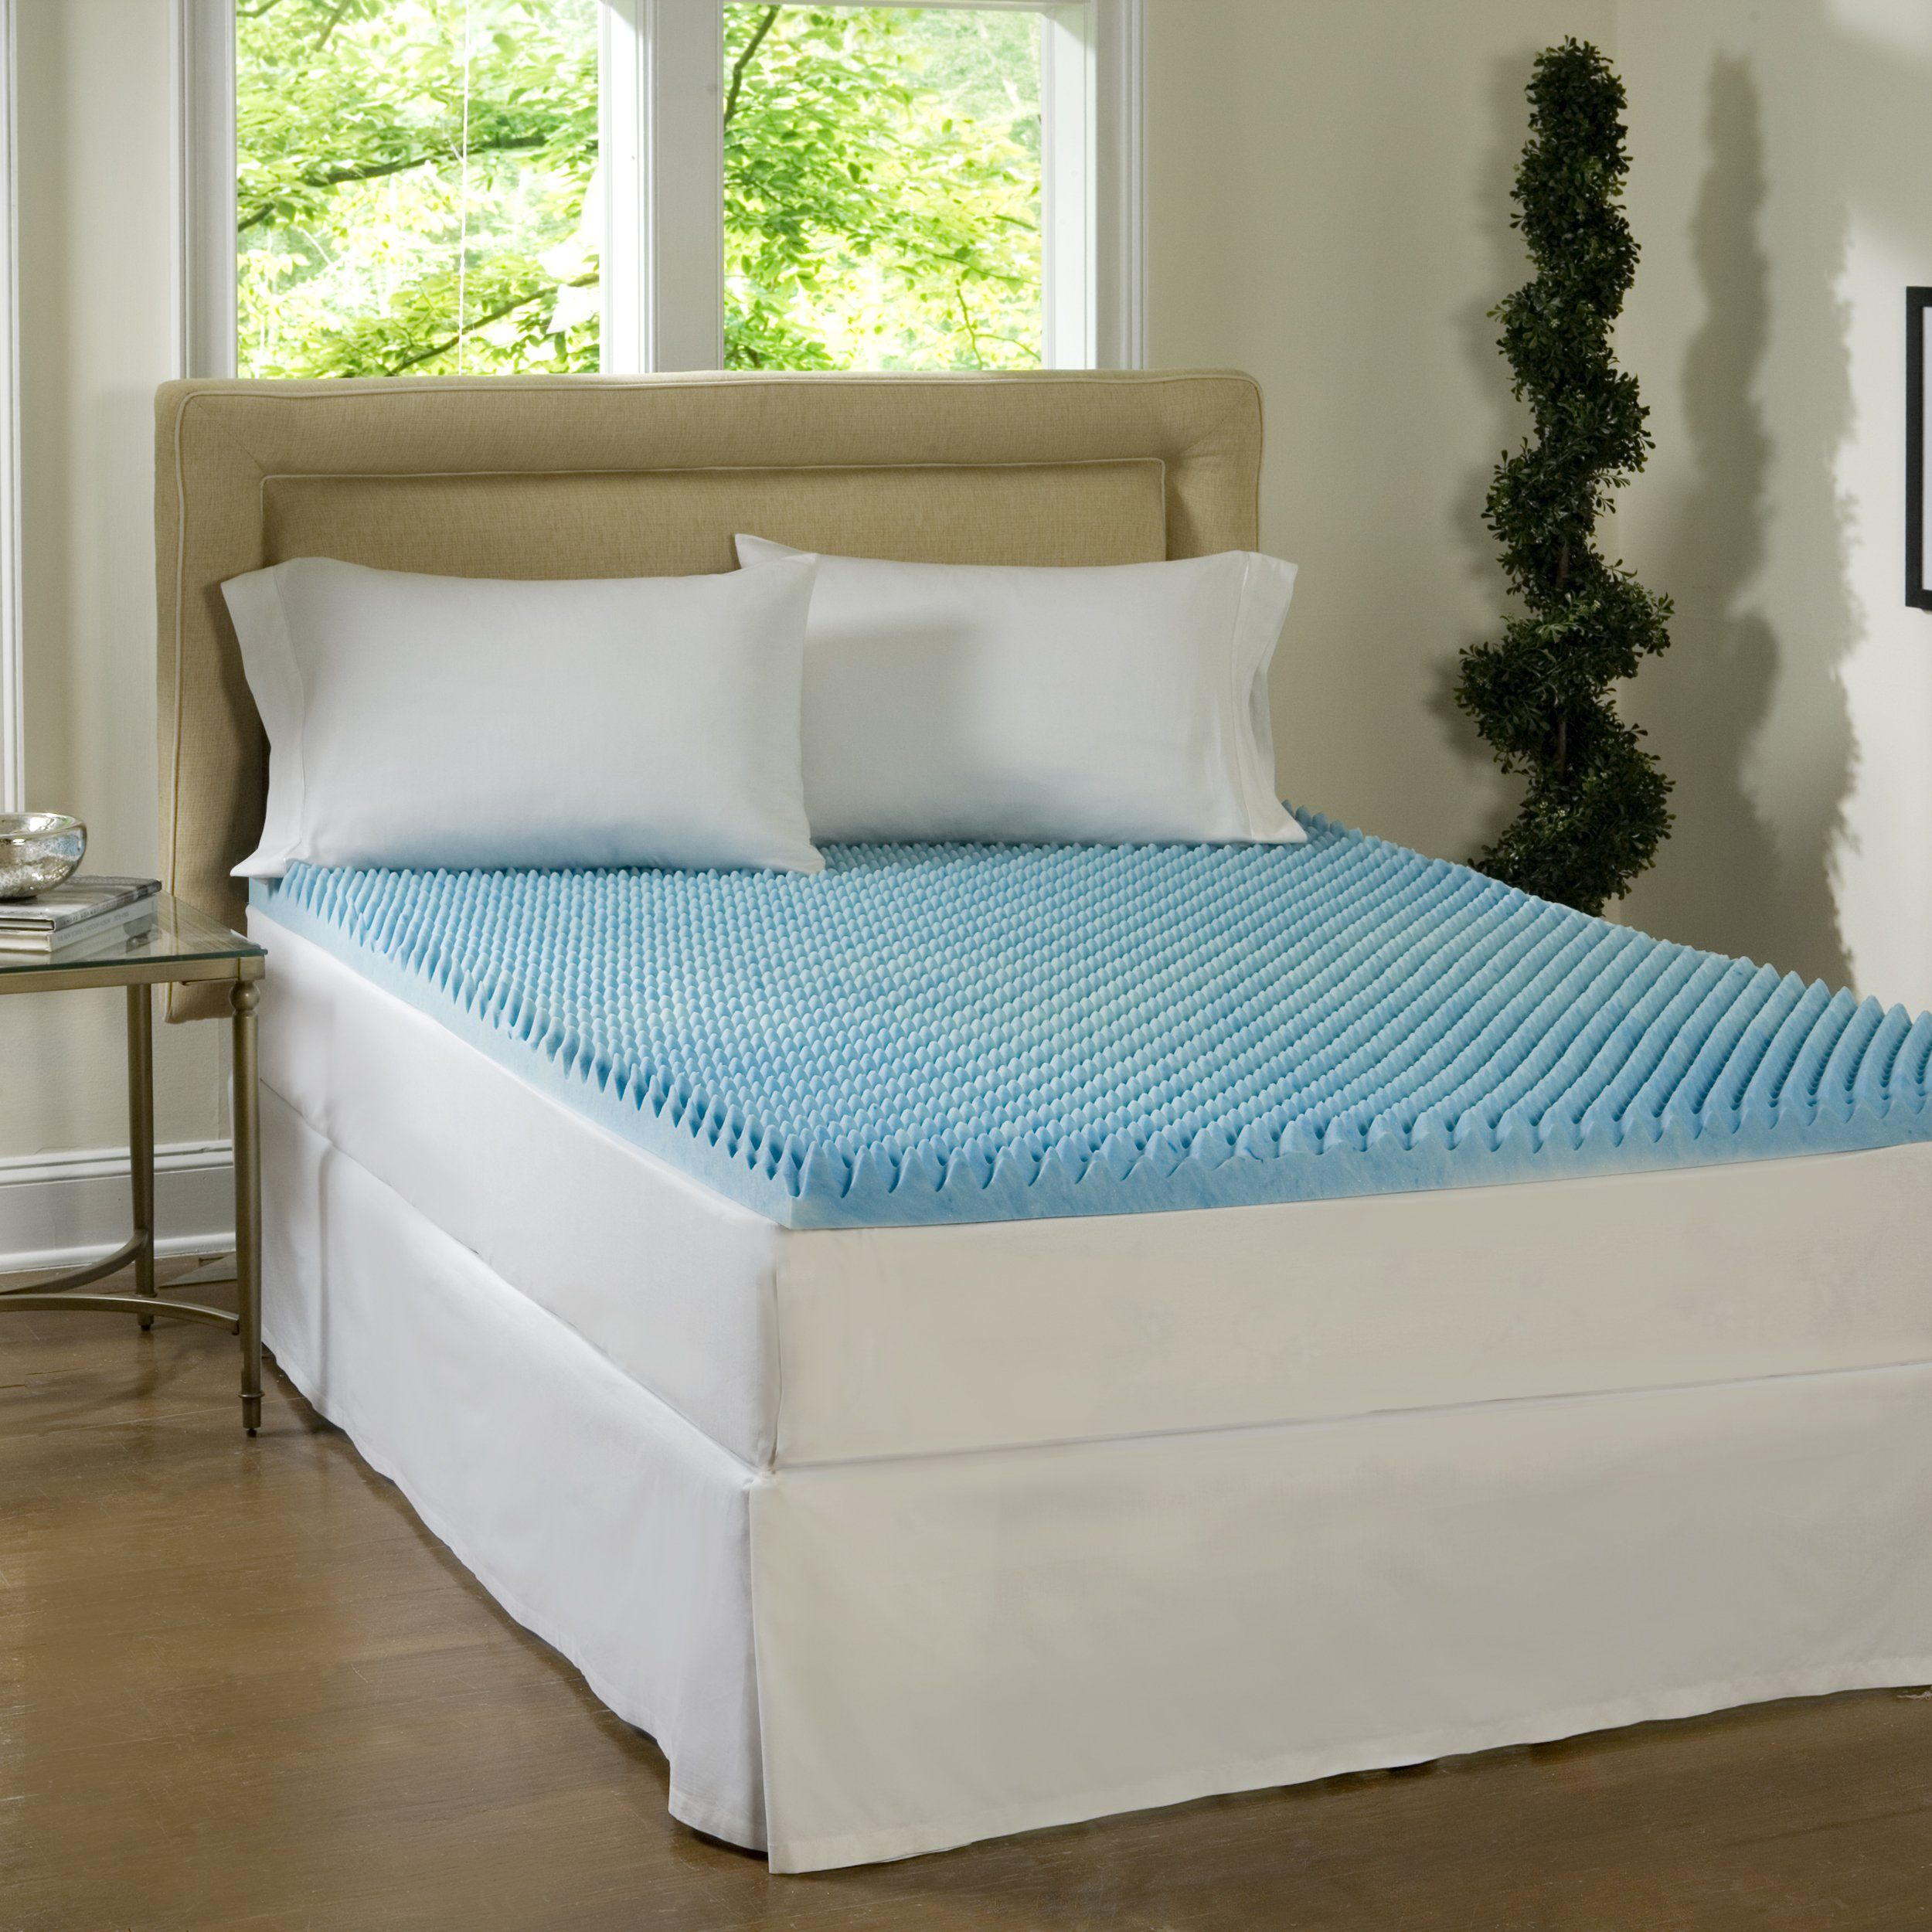 Luxury Egg Crate Foam Mattress Pad King Size